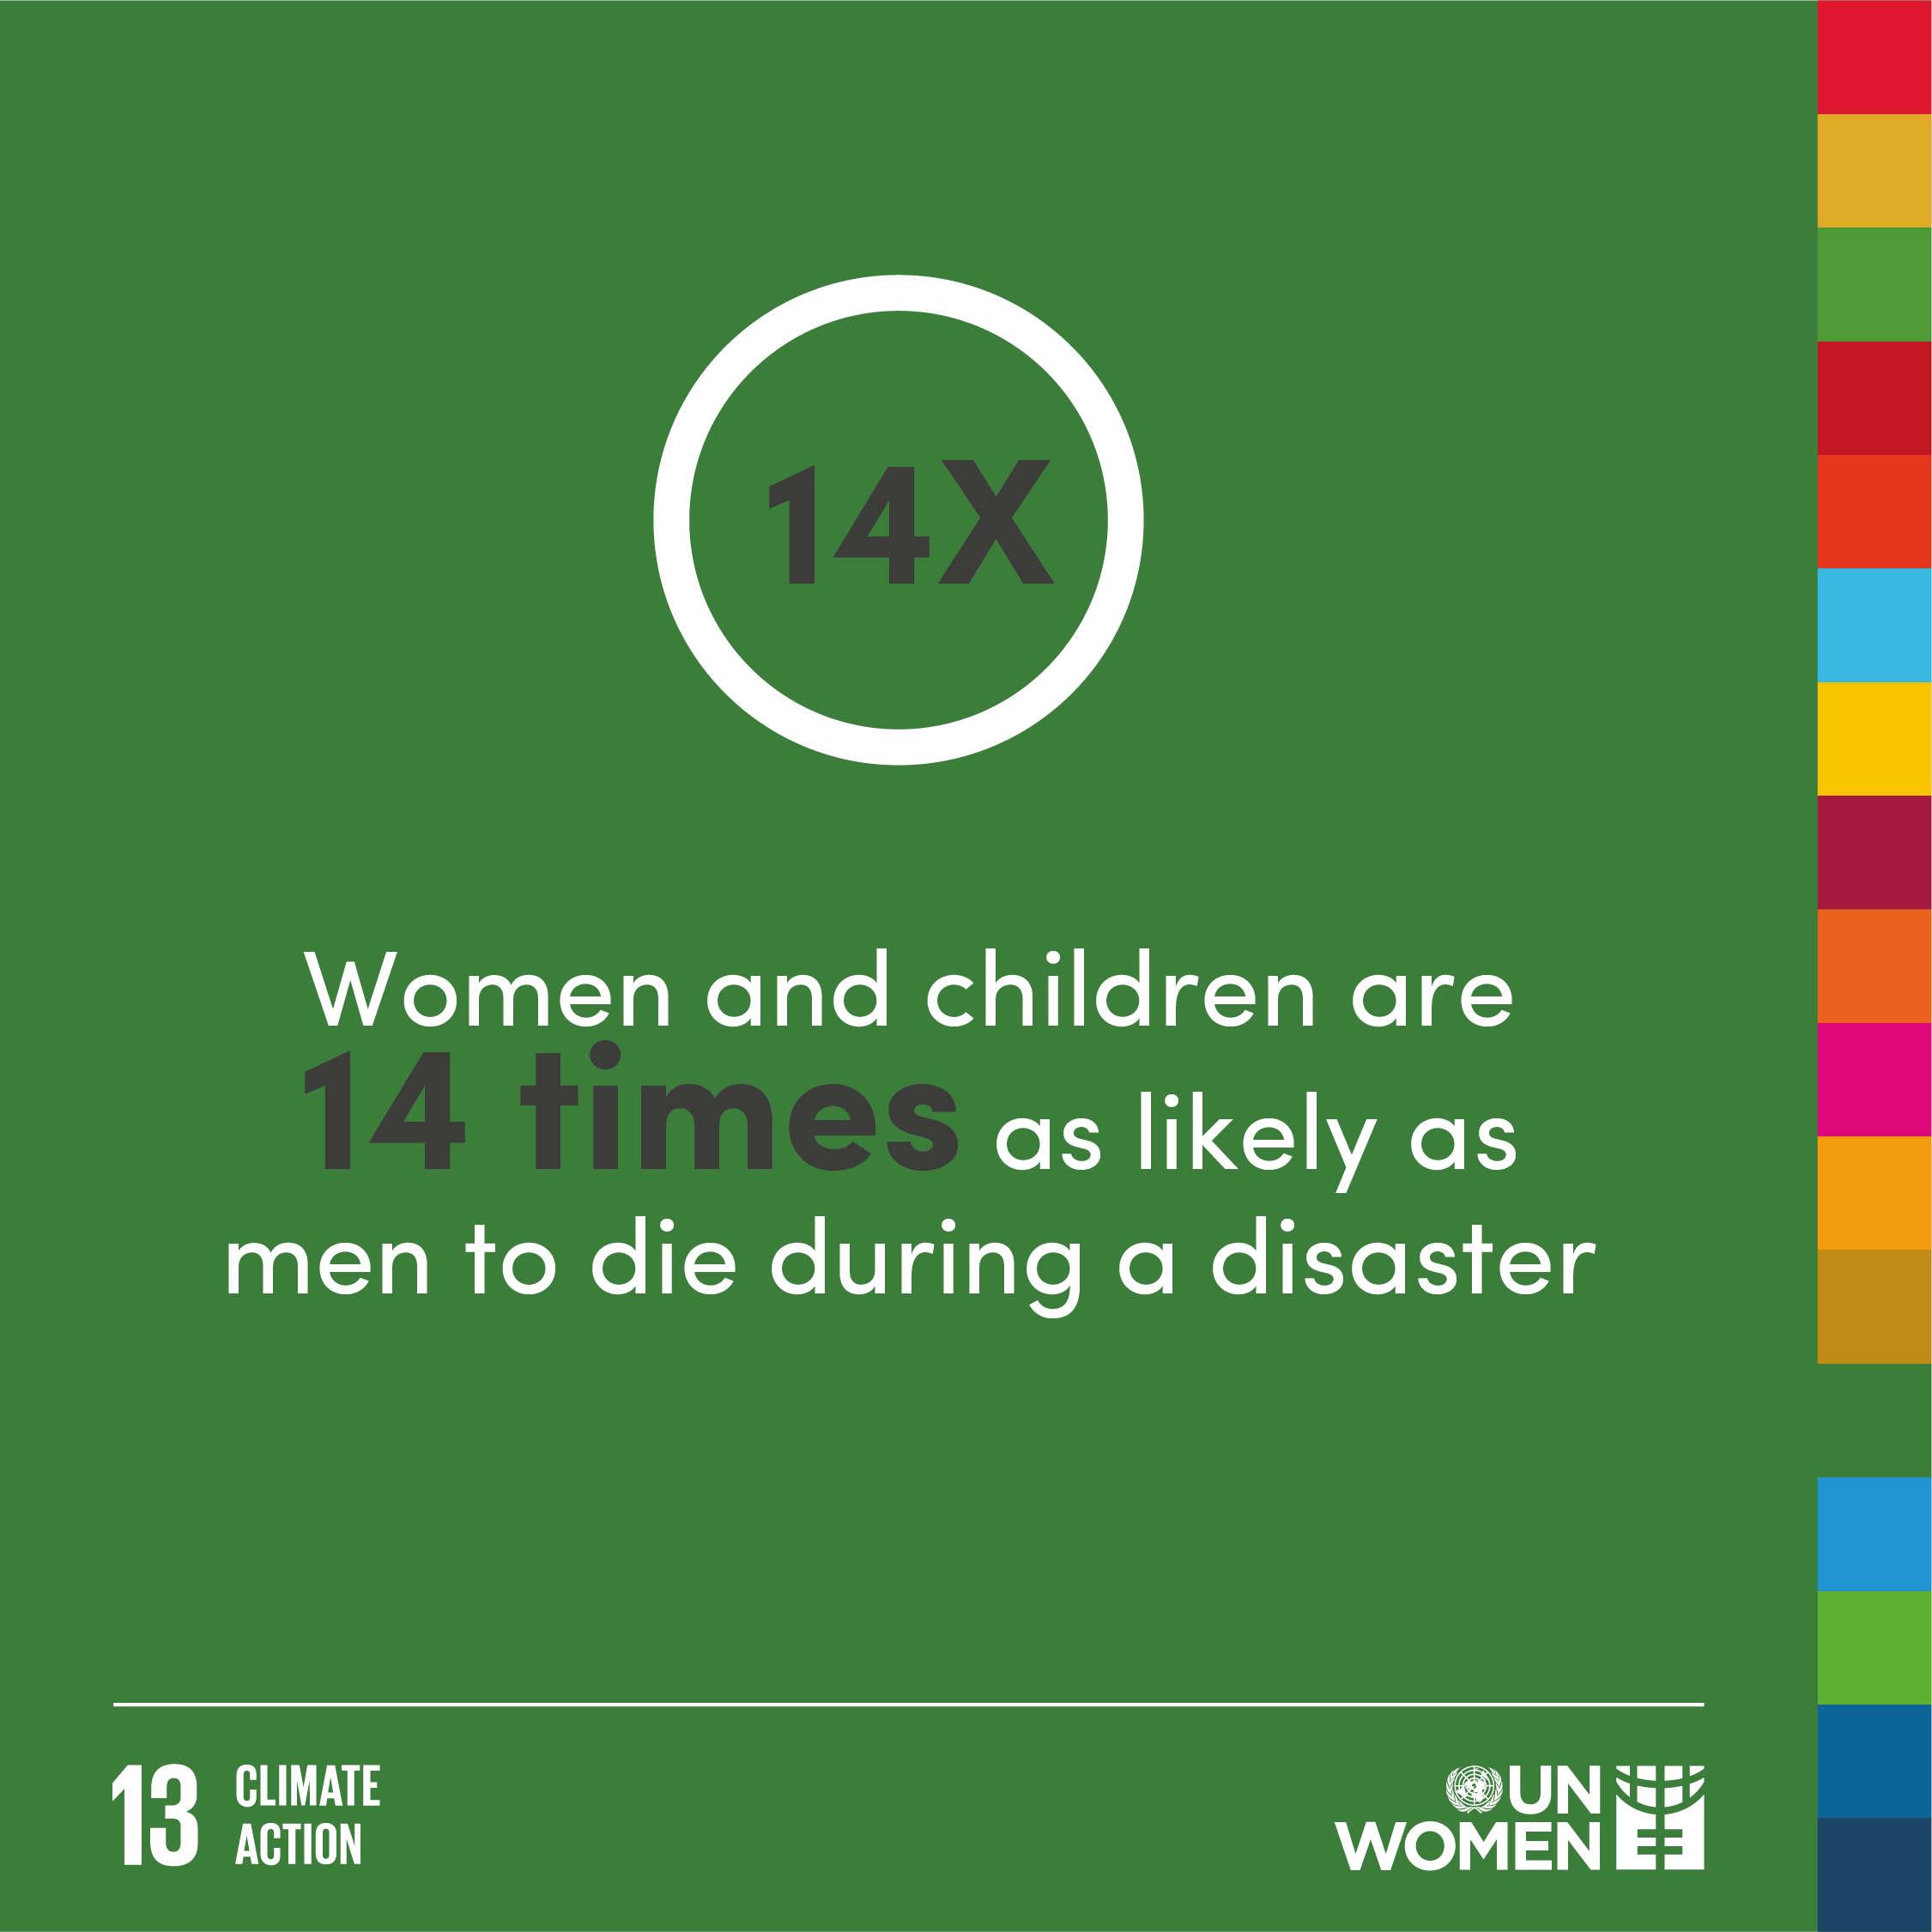 Women and children are 14 times as likely as men to die during a disaster.